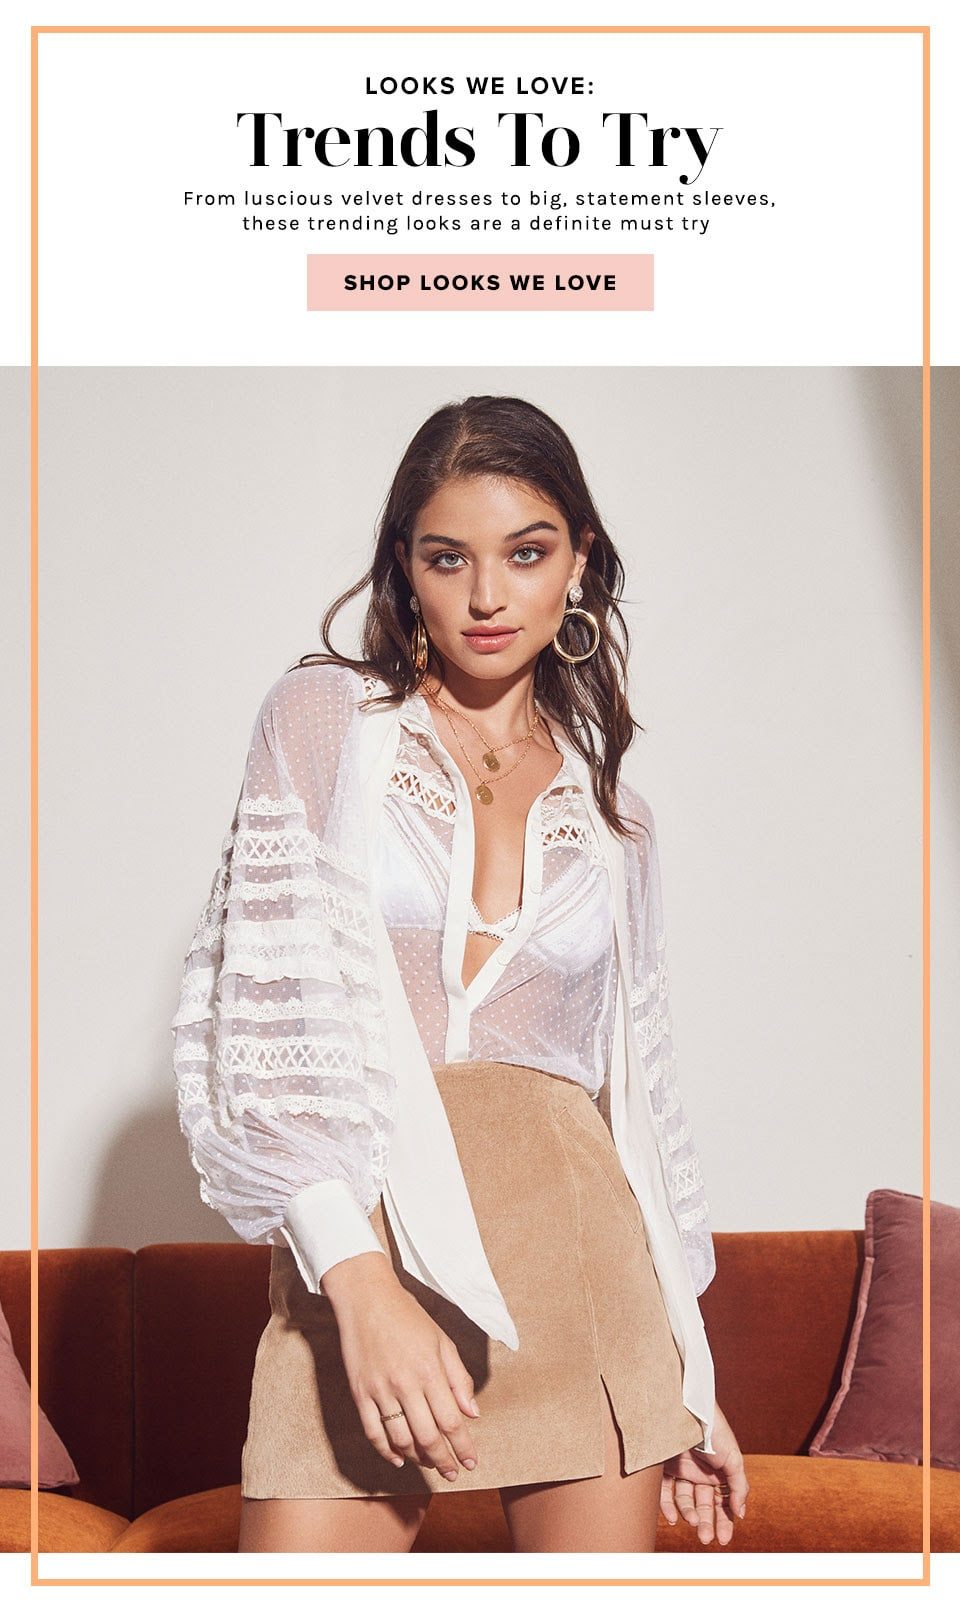 Looks We Love: Trends to Try. From luscious velvet dresses to big, statement sleeves, these trending looks are a definite must try. Shop Looks We Love.